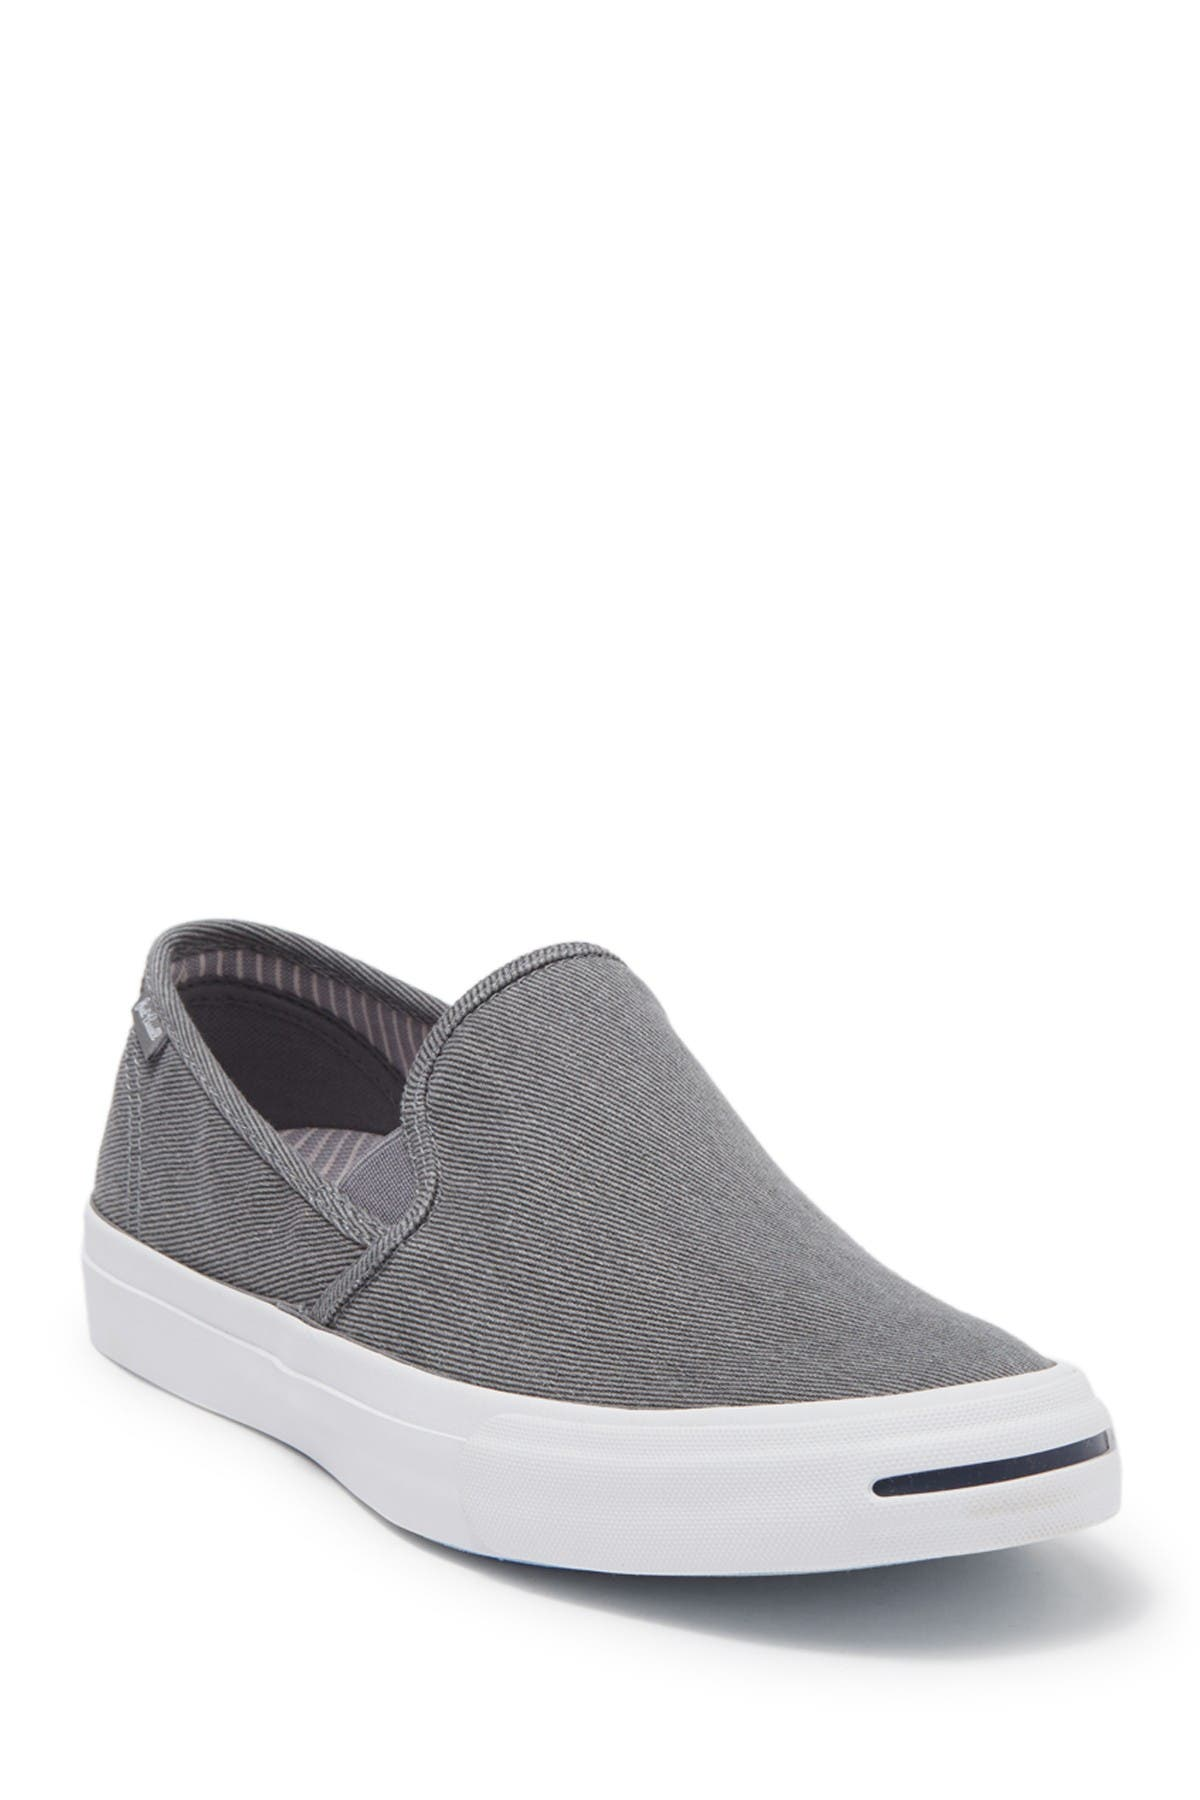 Converse | Jack Purcell II Slip-On